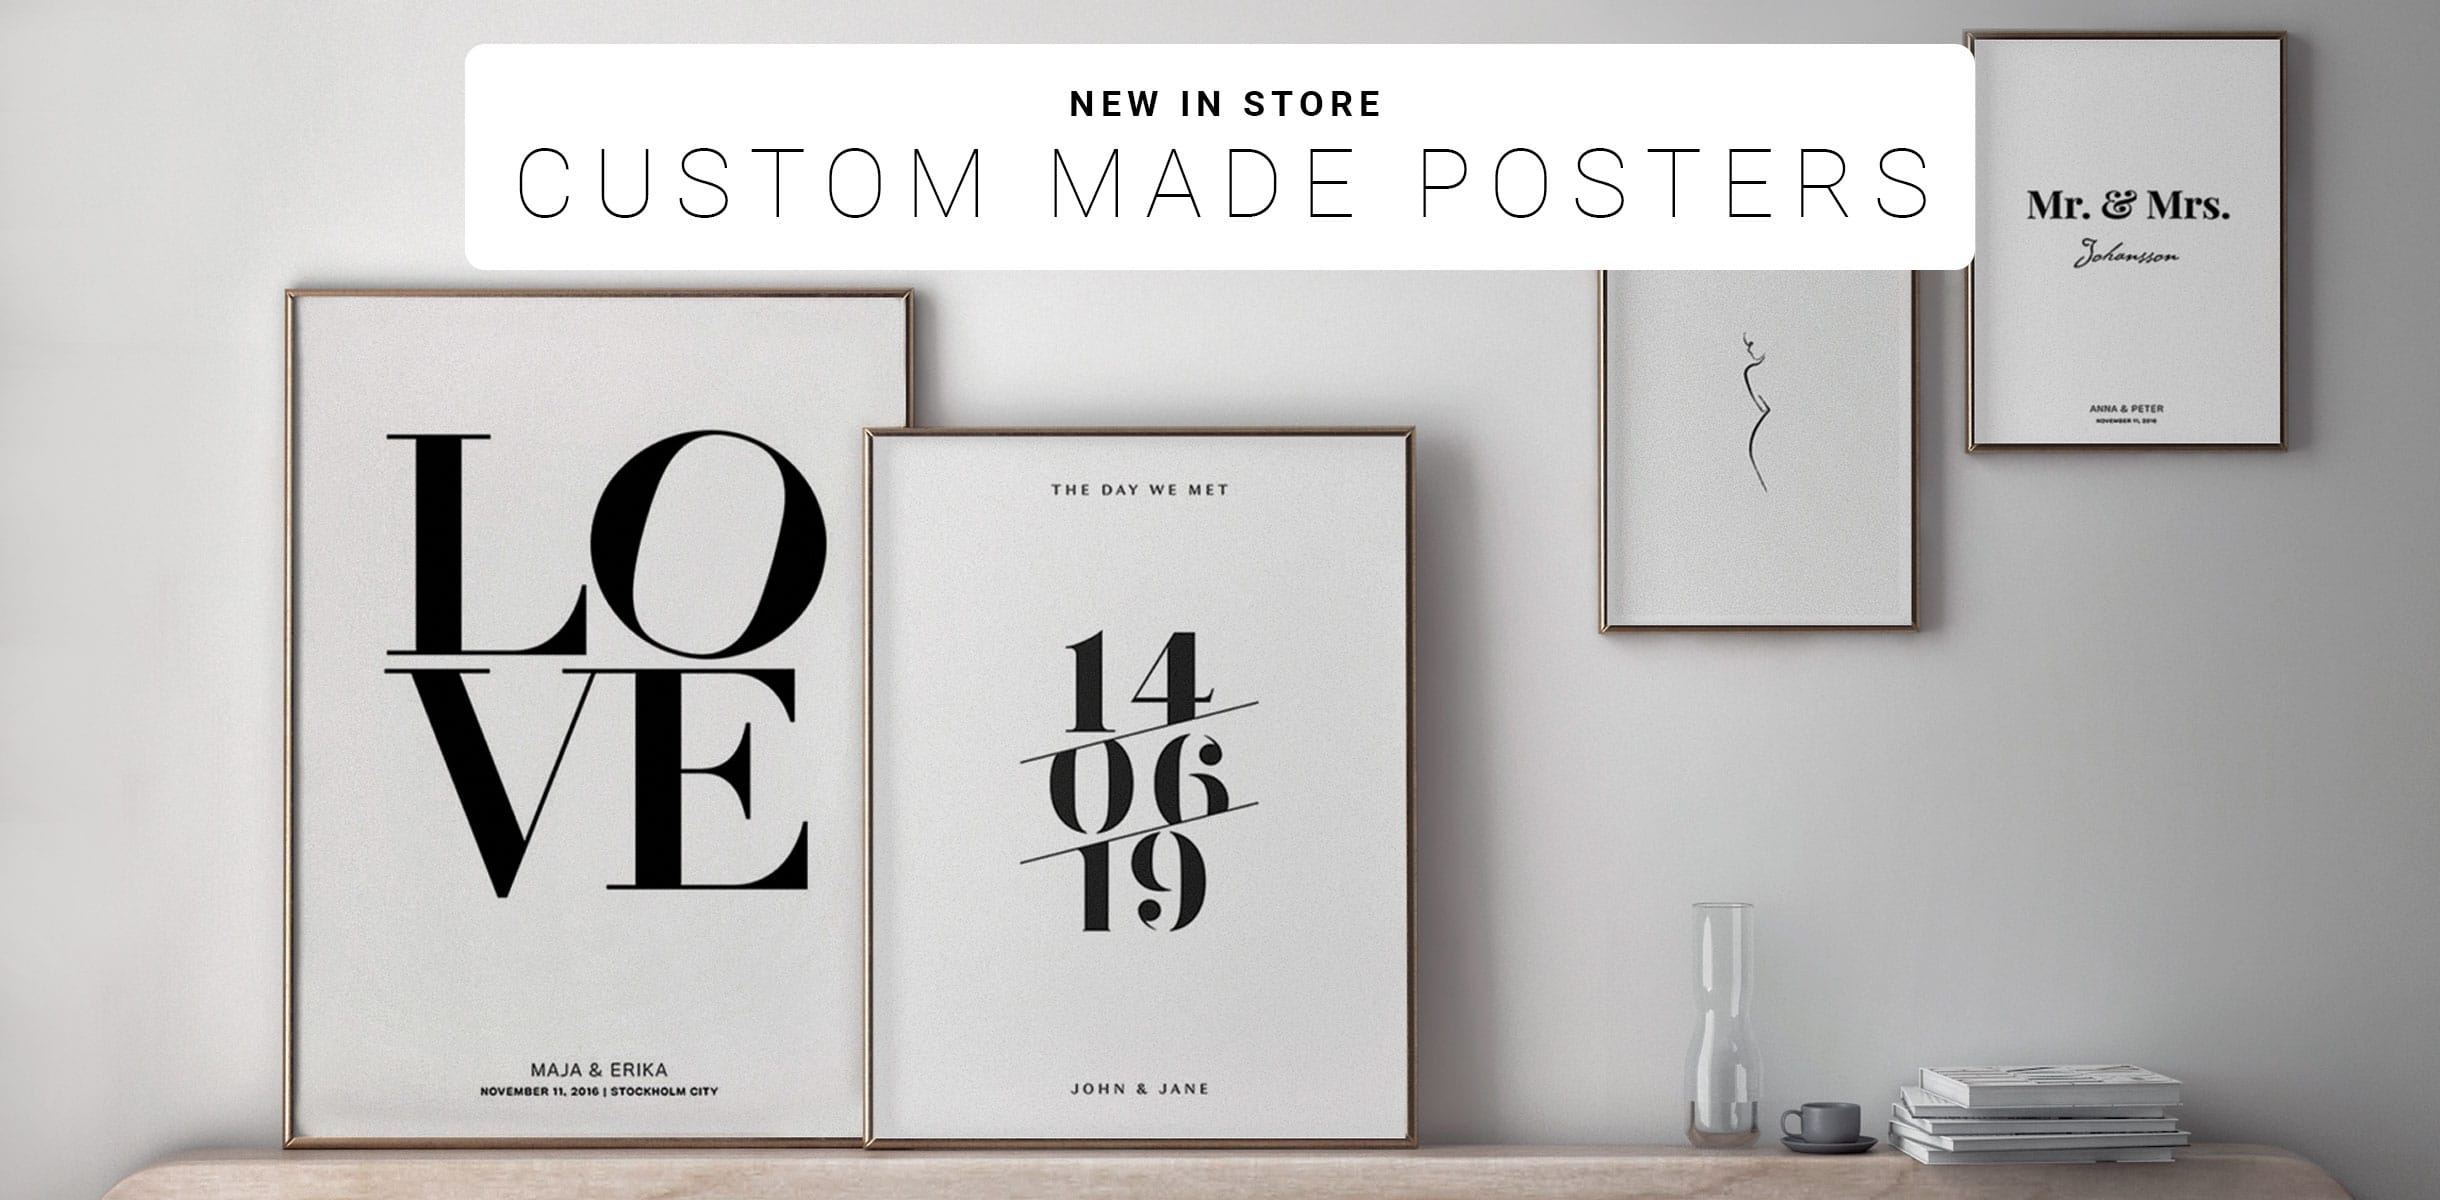 CUSTOM MADE POSTERS